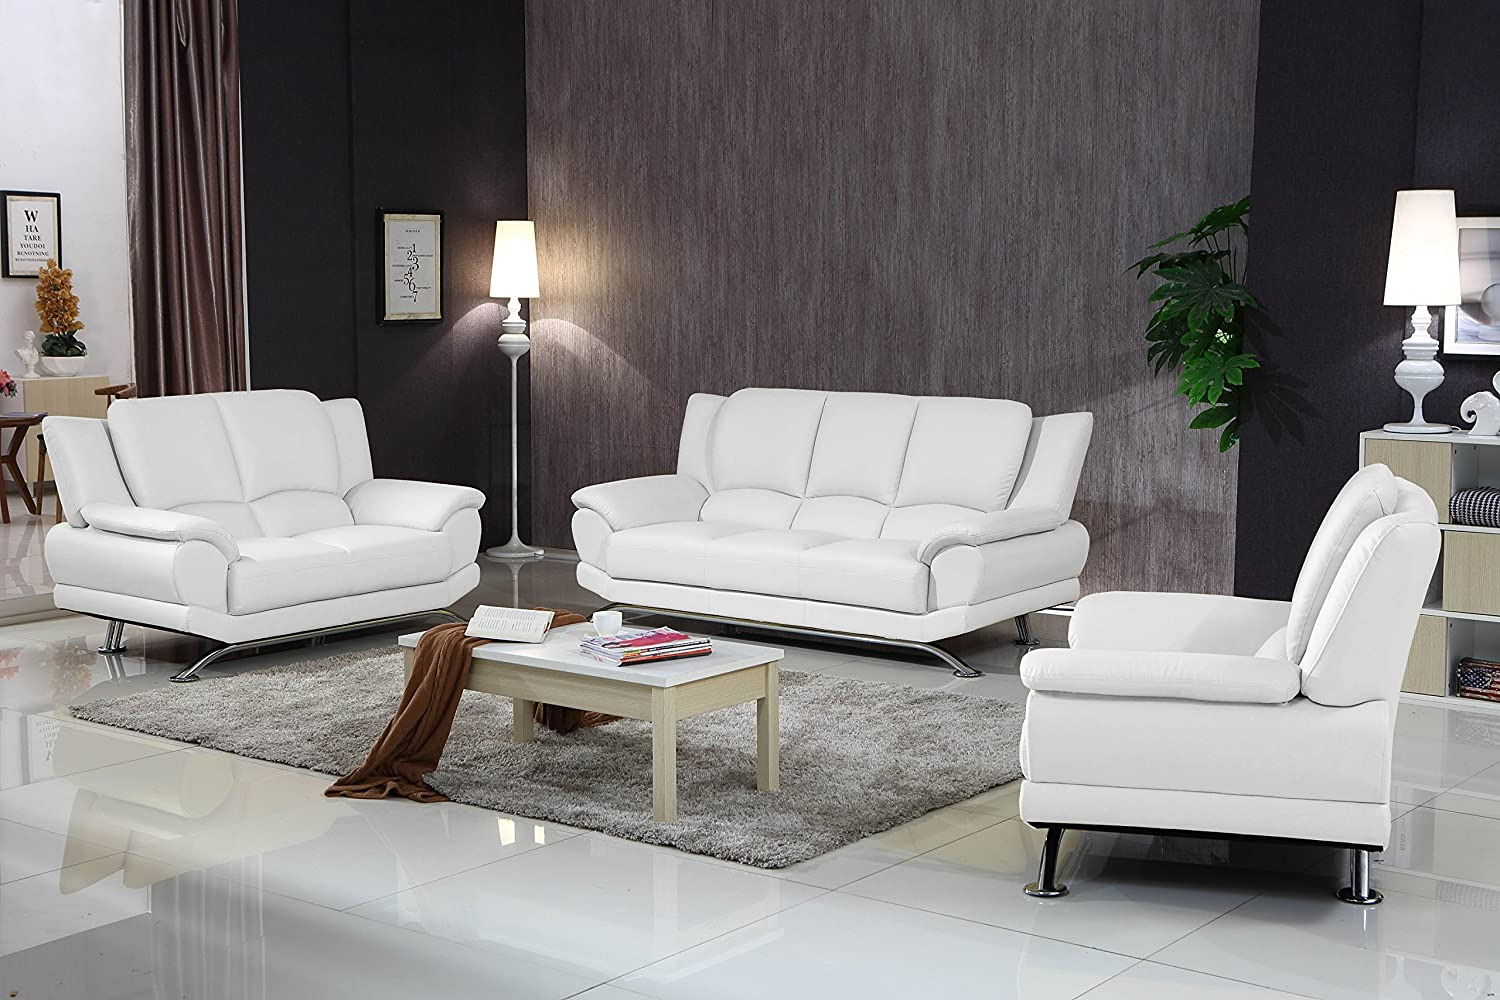 Amazon.com: Matisse Milano Contemporary Leather Sofa Set ...